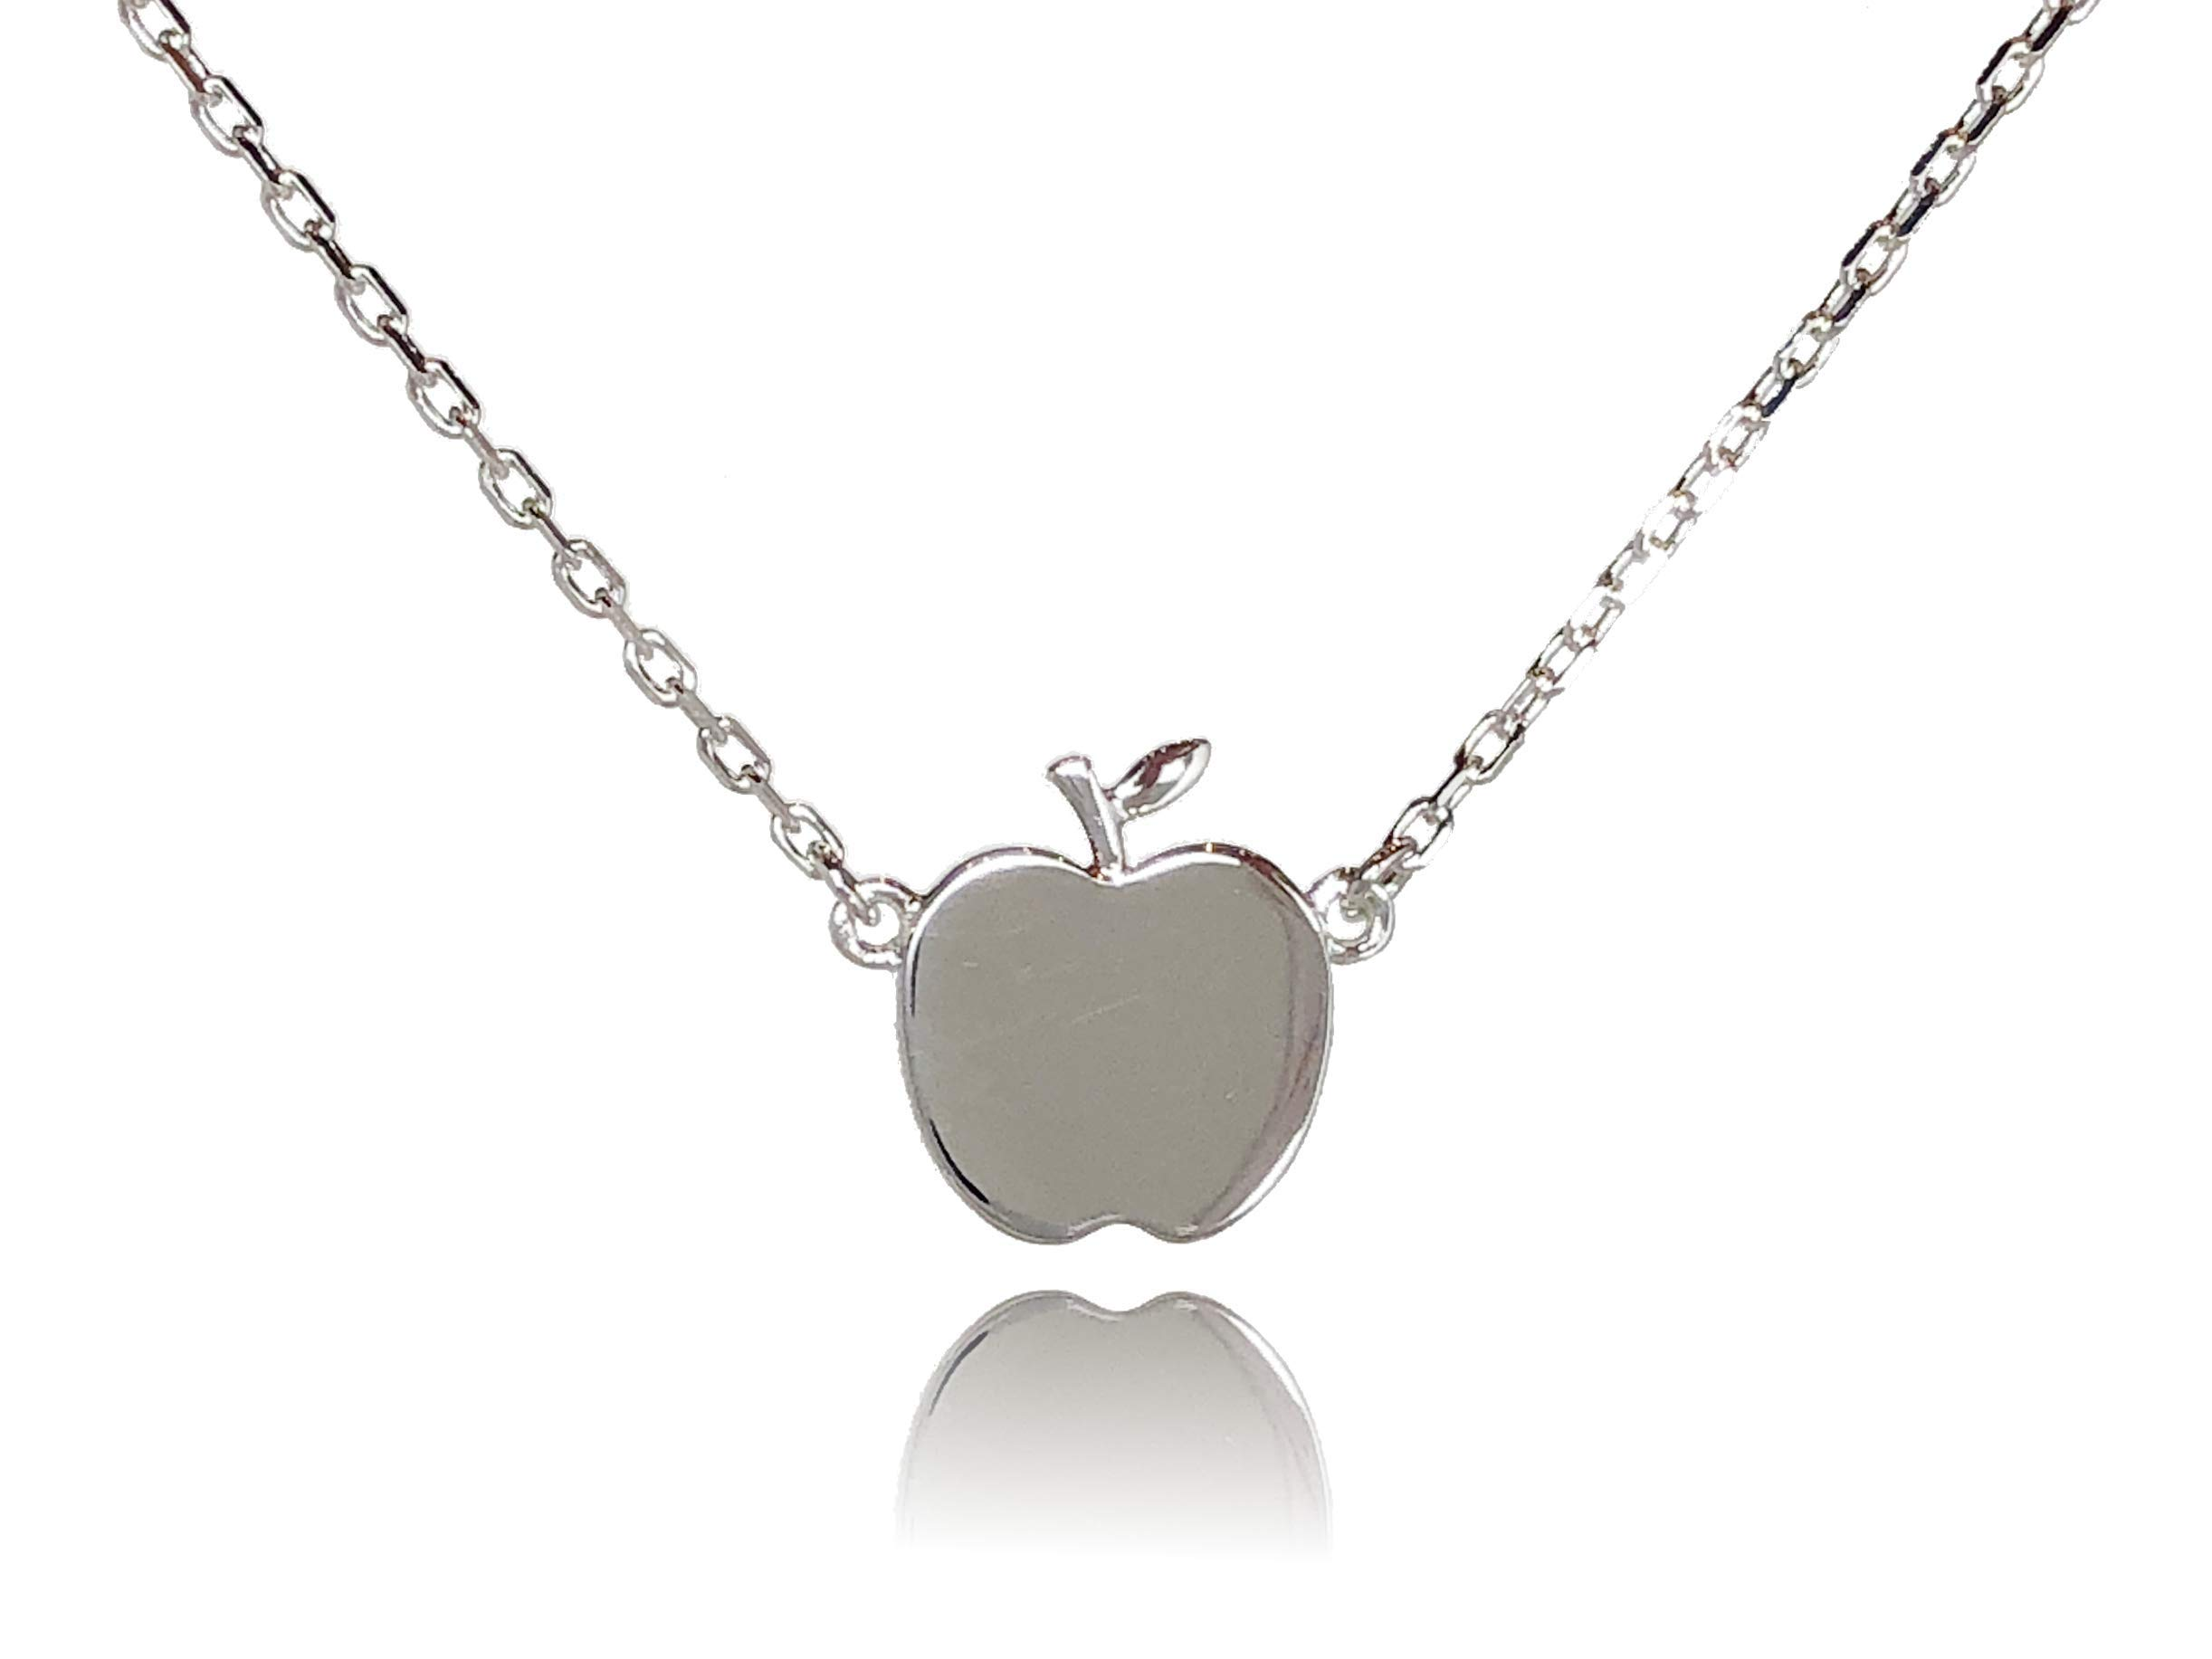 Dote Apple Teacher Pendant Dainty Genuine .925 Sterling Silver Necklace w/ 16-18'' Adjustable Chain